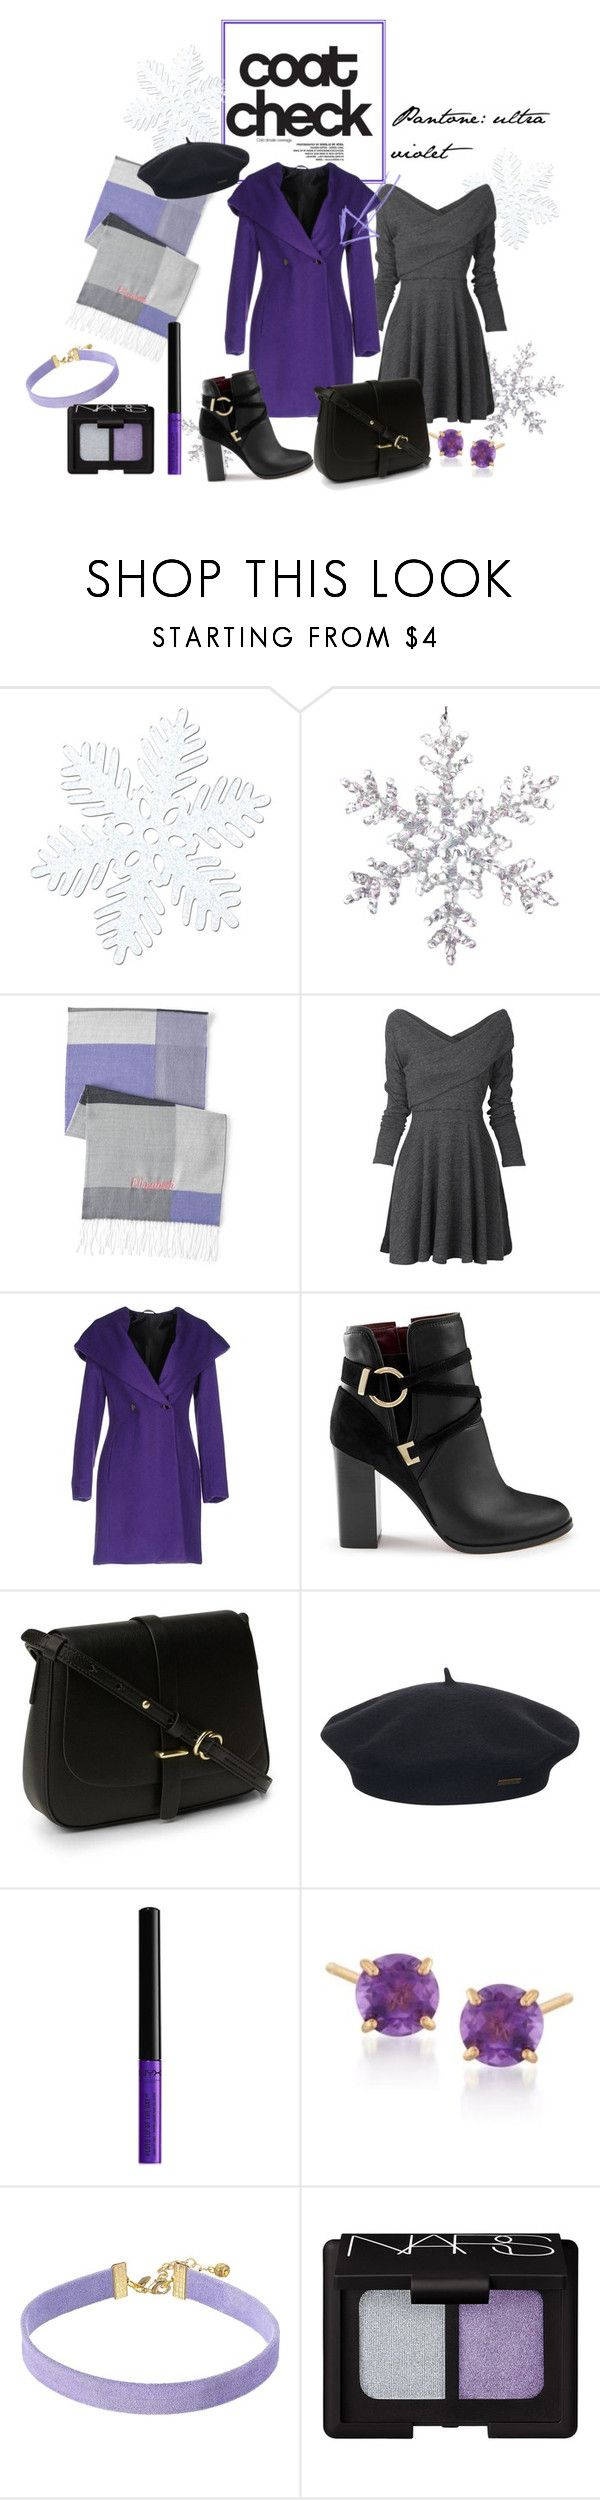 """ultra violet statement coat"" by ornella-basso on Polyvore featuring moda, Lands' End, Carla G., Miss Selfridge, Element, NYX, Ross-Simons, Vanessa Mooney, NARS Cosmetics e Winter"